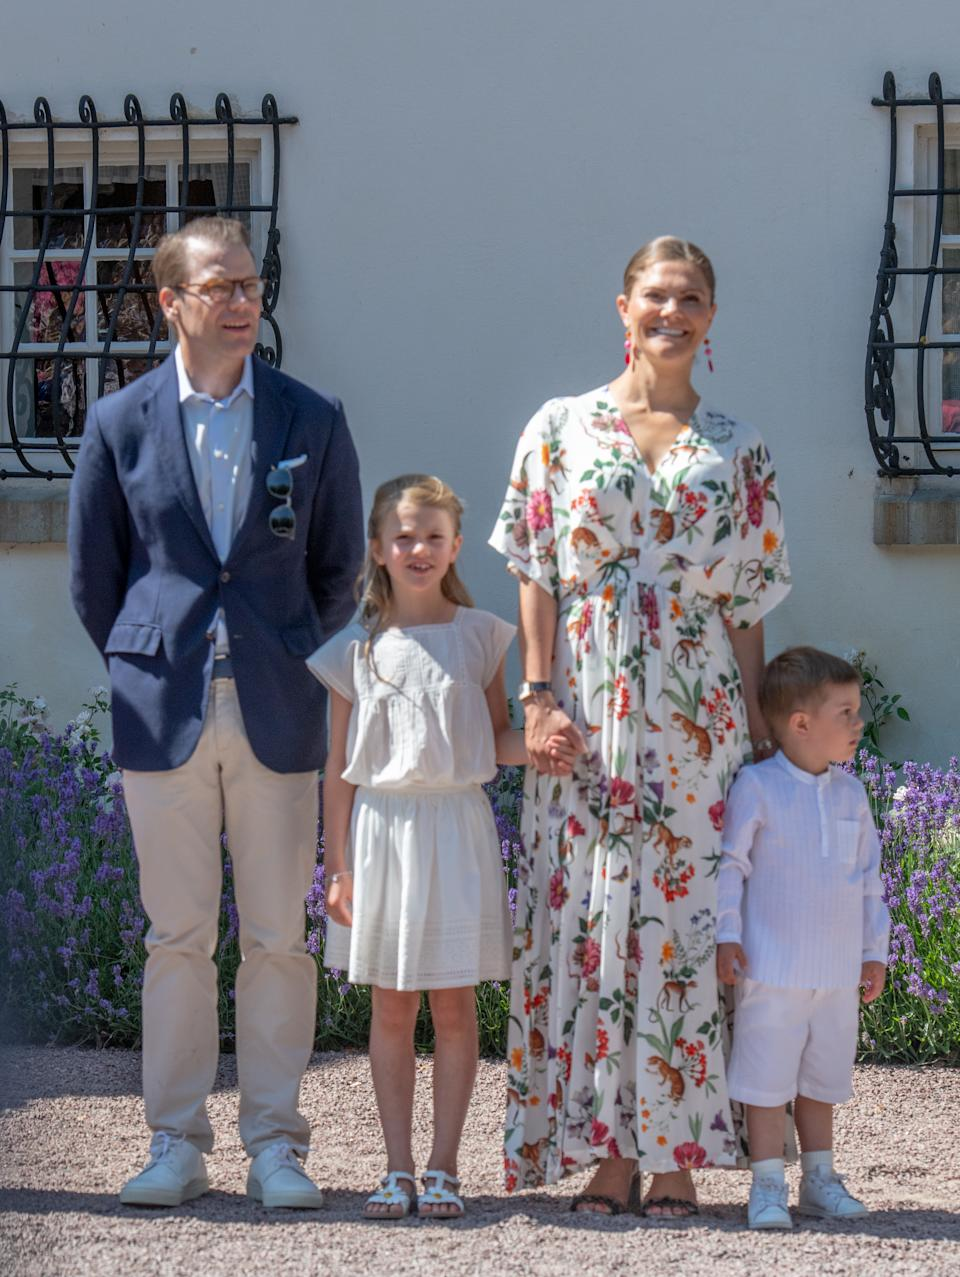 BORGHOLM, SWEDEN - JULY 14: Crown Princess Victoria and her family attend The Crown Princess Victoria of Sweden's 42nd birthday celebrations on July 14, 2019 at Solliden Palace in Borgholm, Oland, Sweden. (Photo by Julia Reinhart/Getty Images)